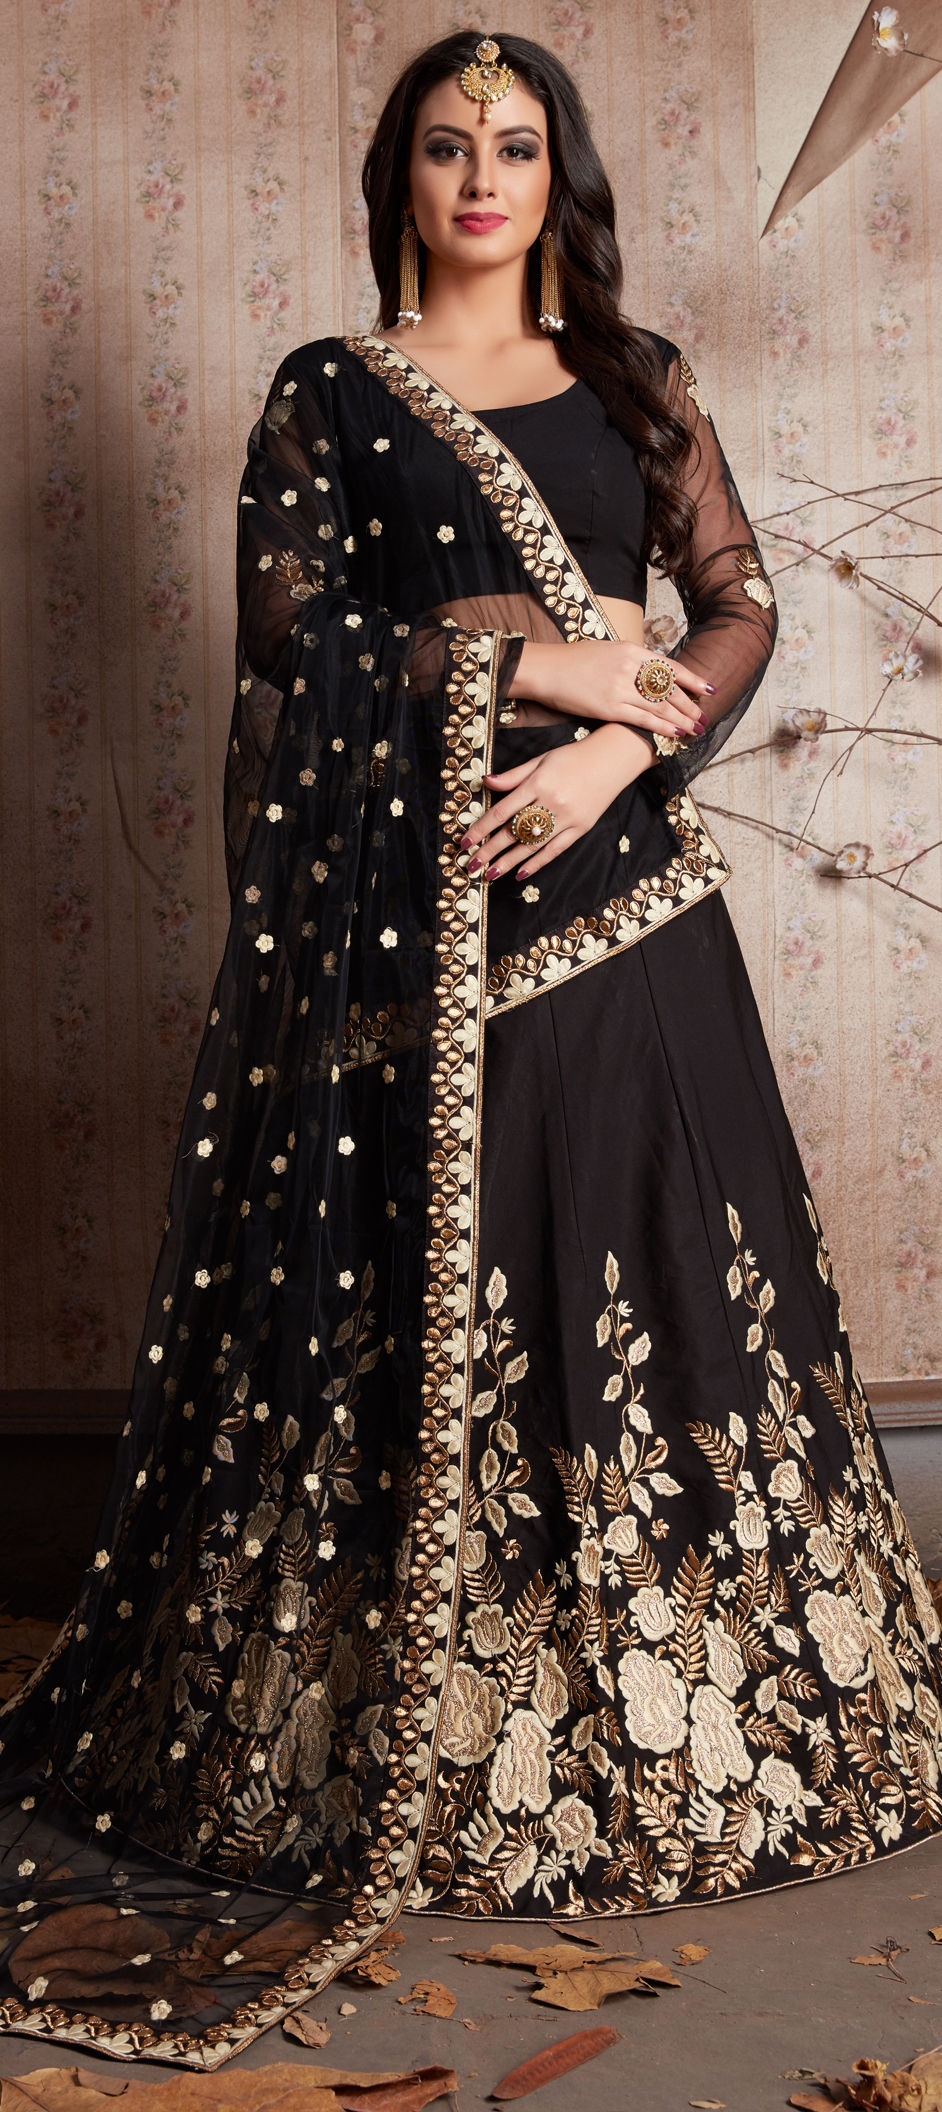 Crepe Silk Mehendi Sangeet Lehenga in Black and Grey with Sequence work